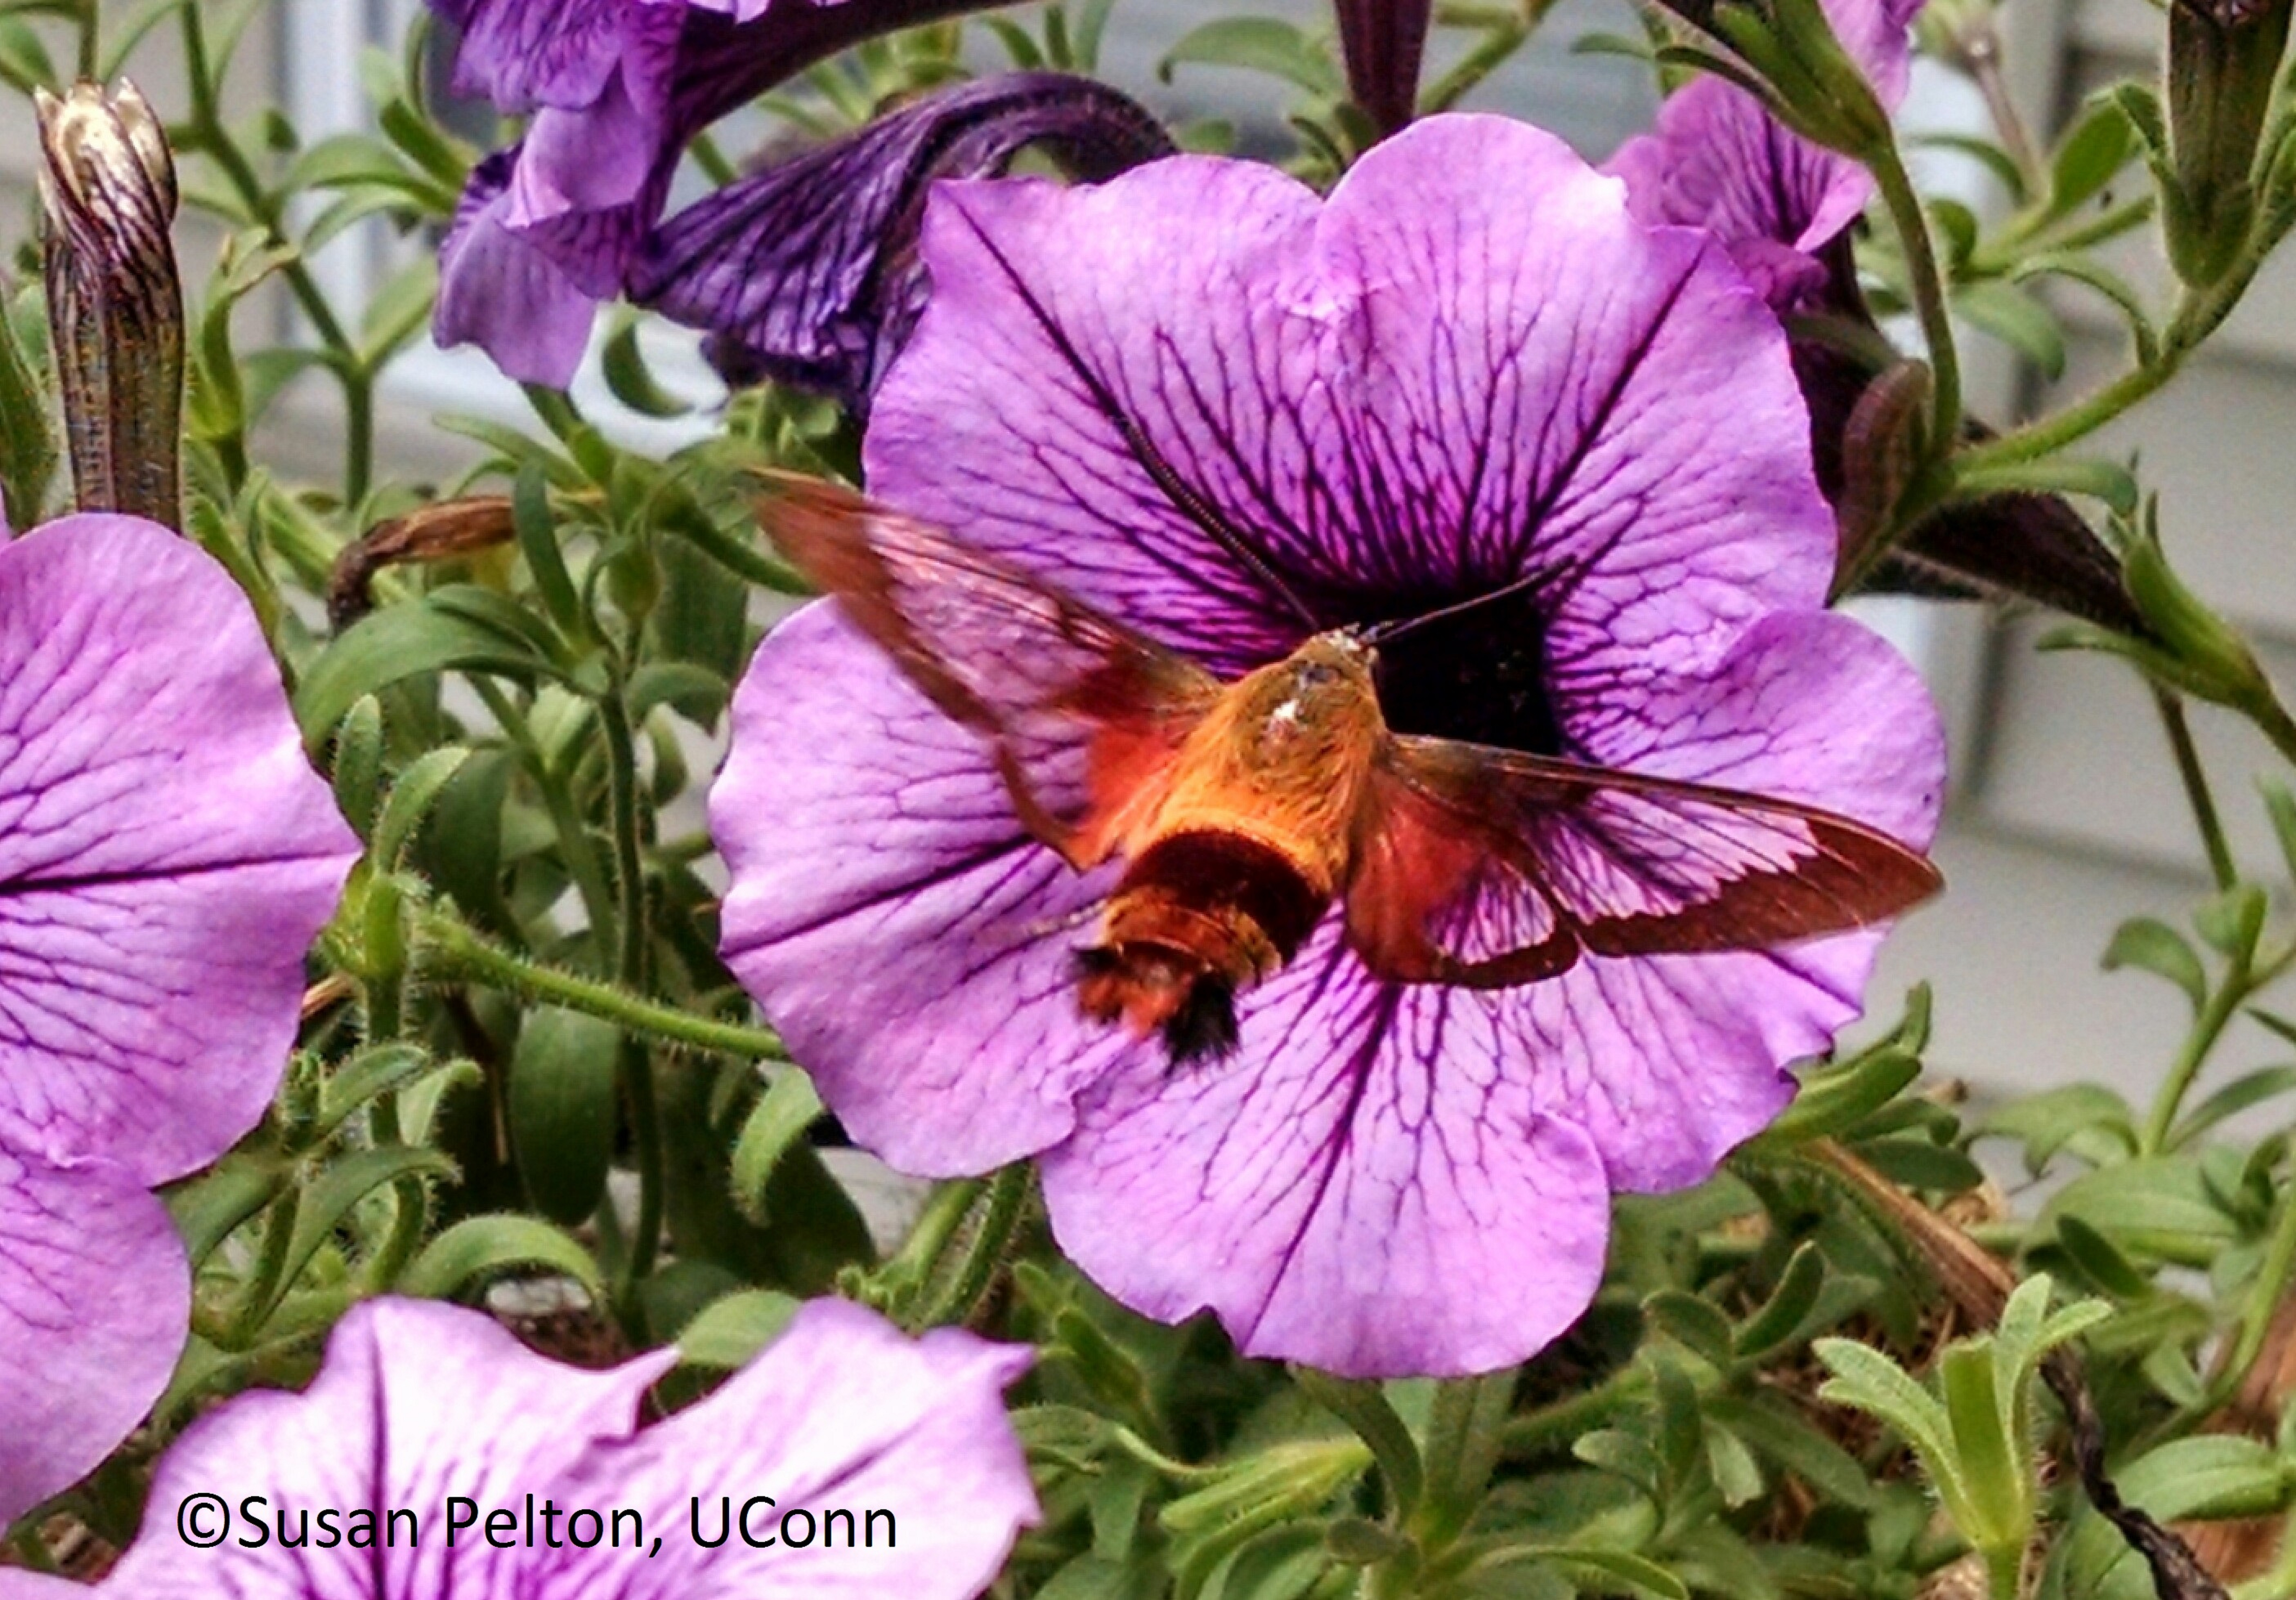 Annuals keep in mind that annuals are fast growing short lived plants they germinate from seed grow bloom set seed and die all within a single growing season izmirmasajfo